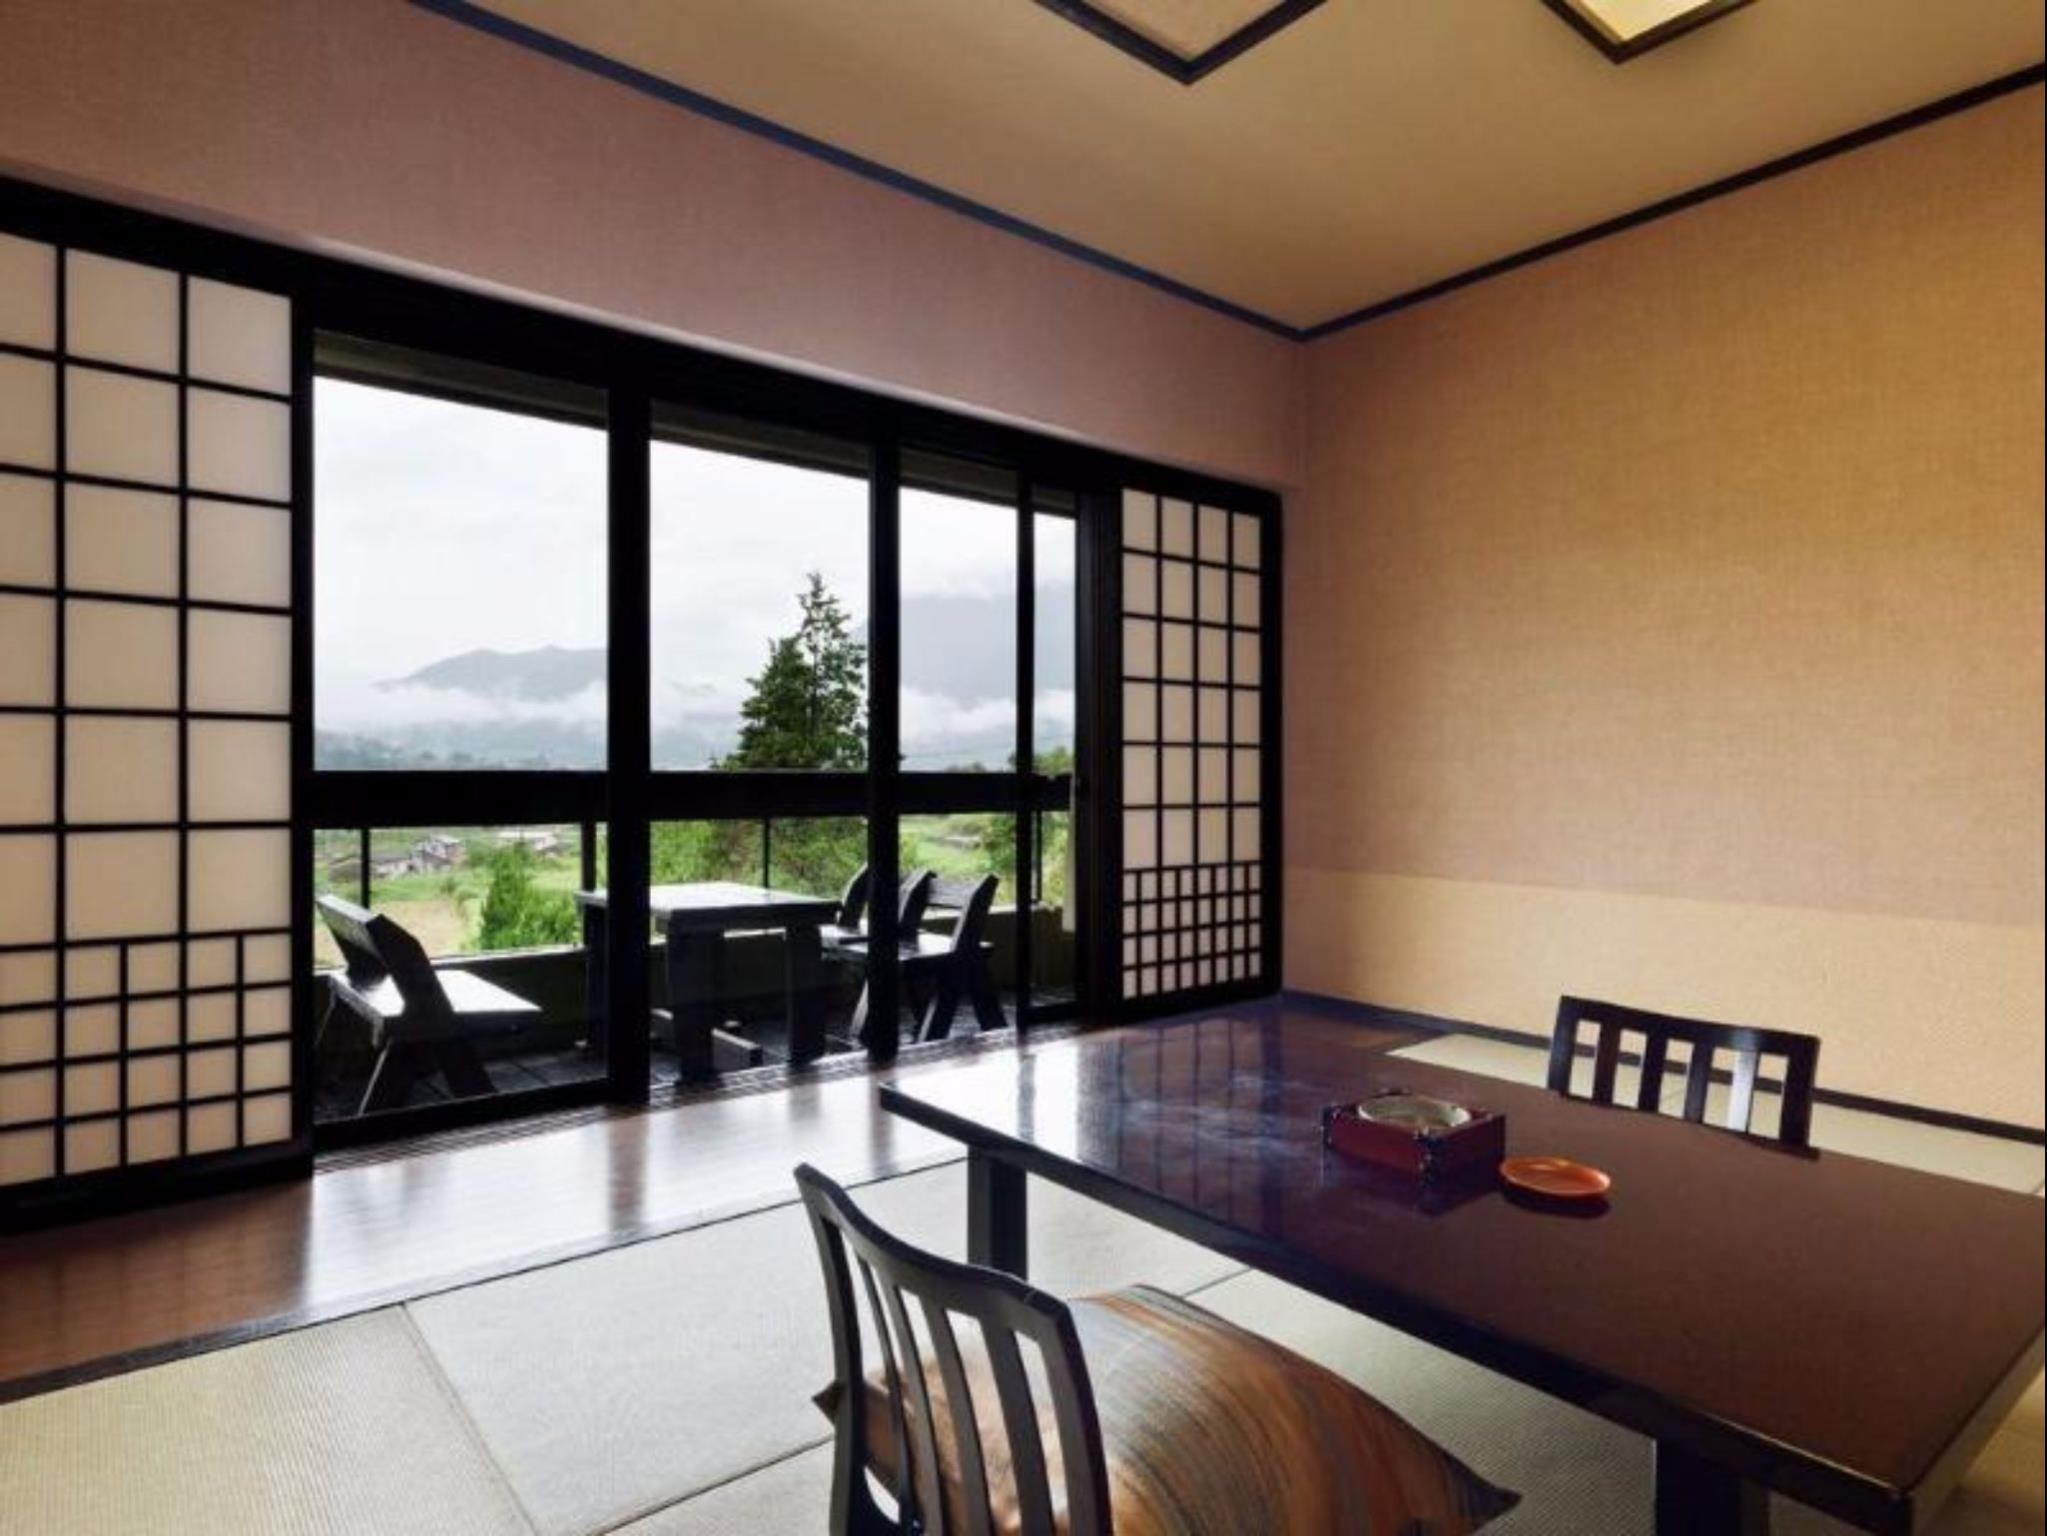 Mount Yufu View Japanese Style Room for 5 People